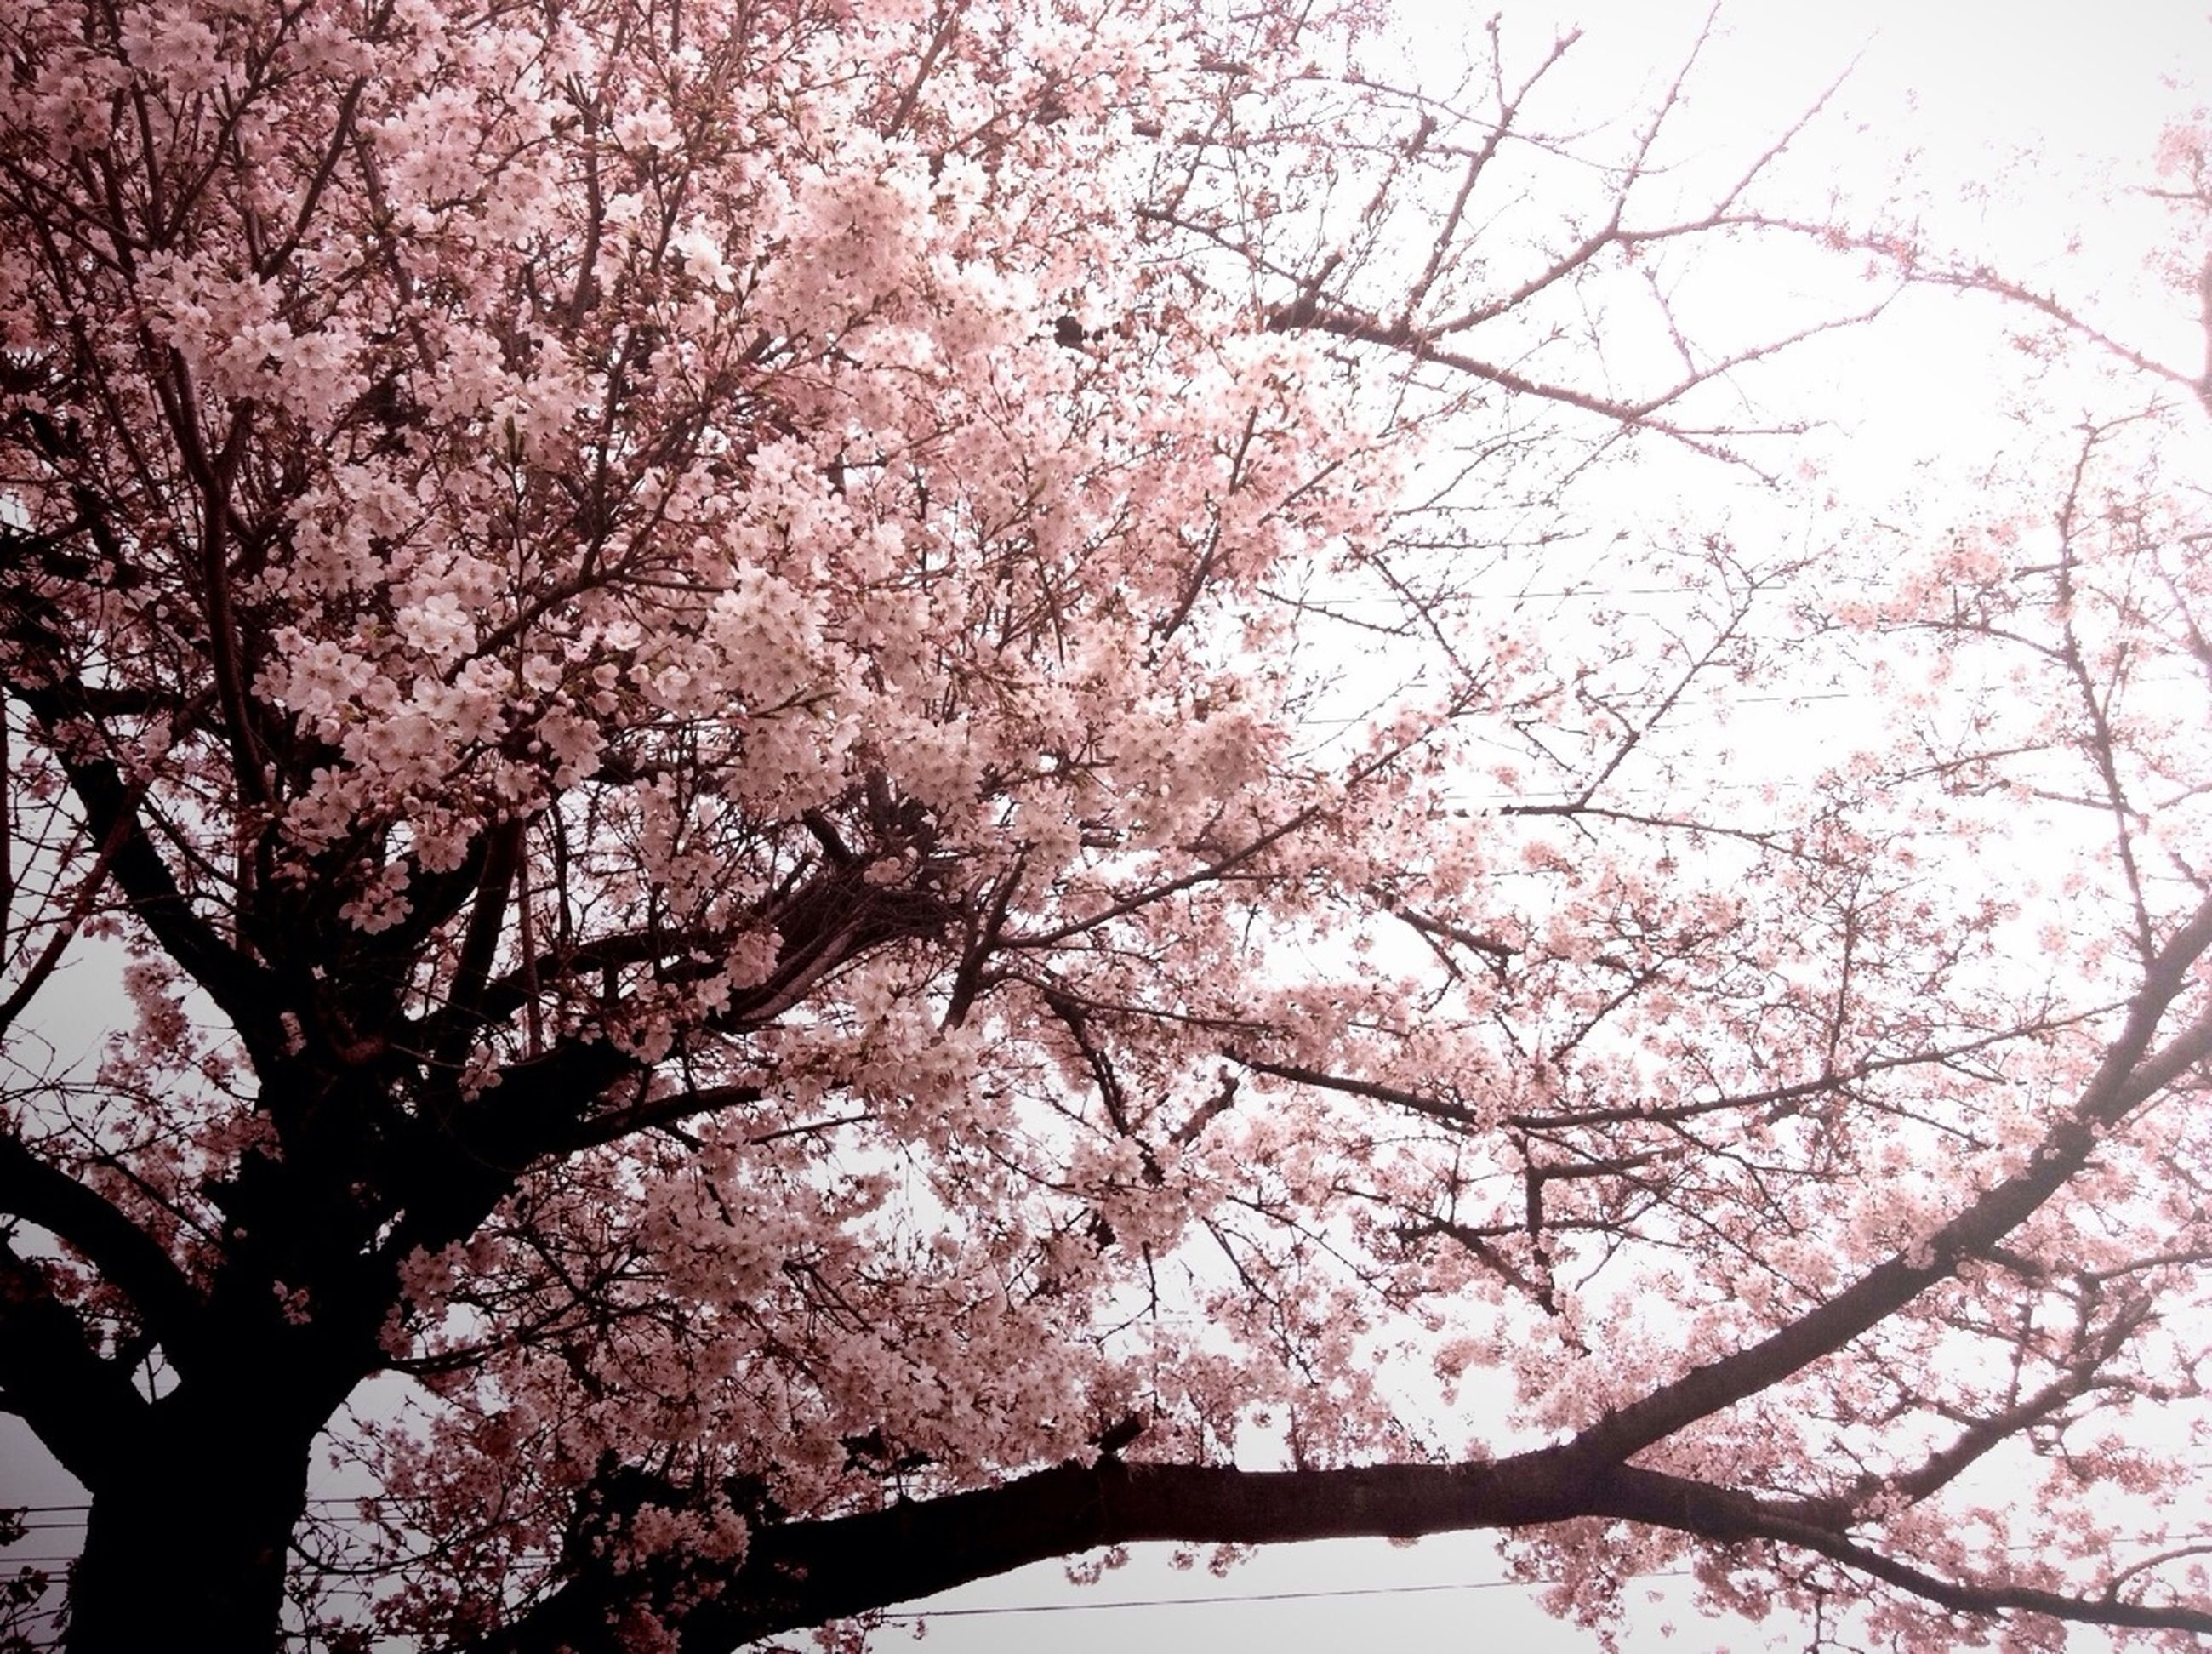 tree, branch, flower, growth, low angle view, cherry blossom, beauty in nature, freshness, blossom, cherry tree, nature, fragility, pink color, springtime, in bloom, blooming, sky, fruit tree, outdoors, day